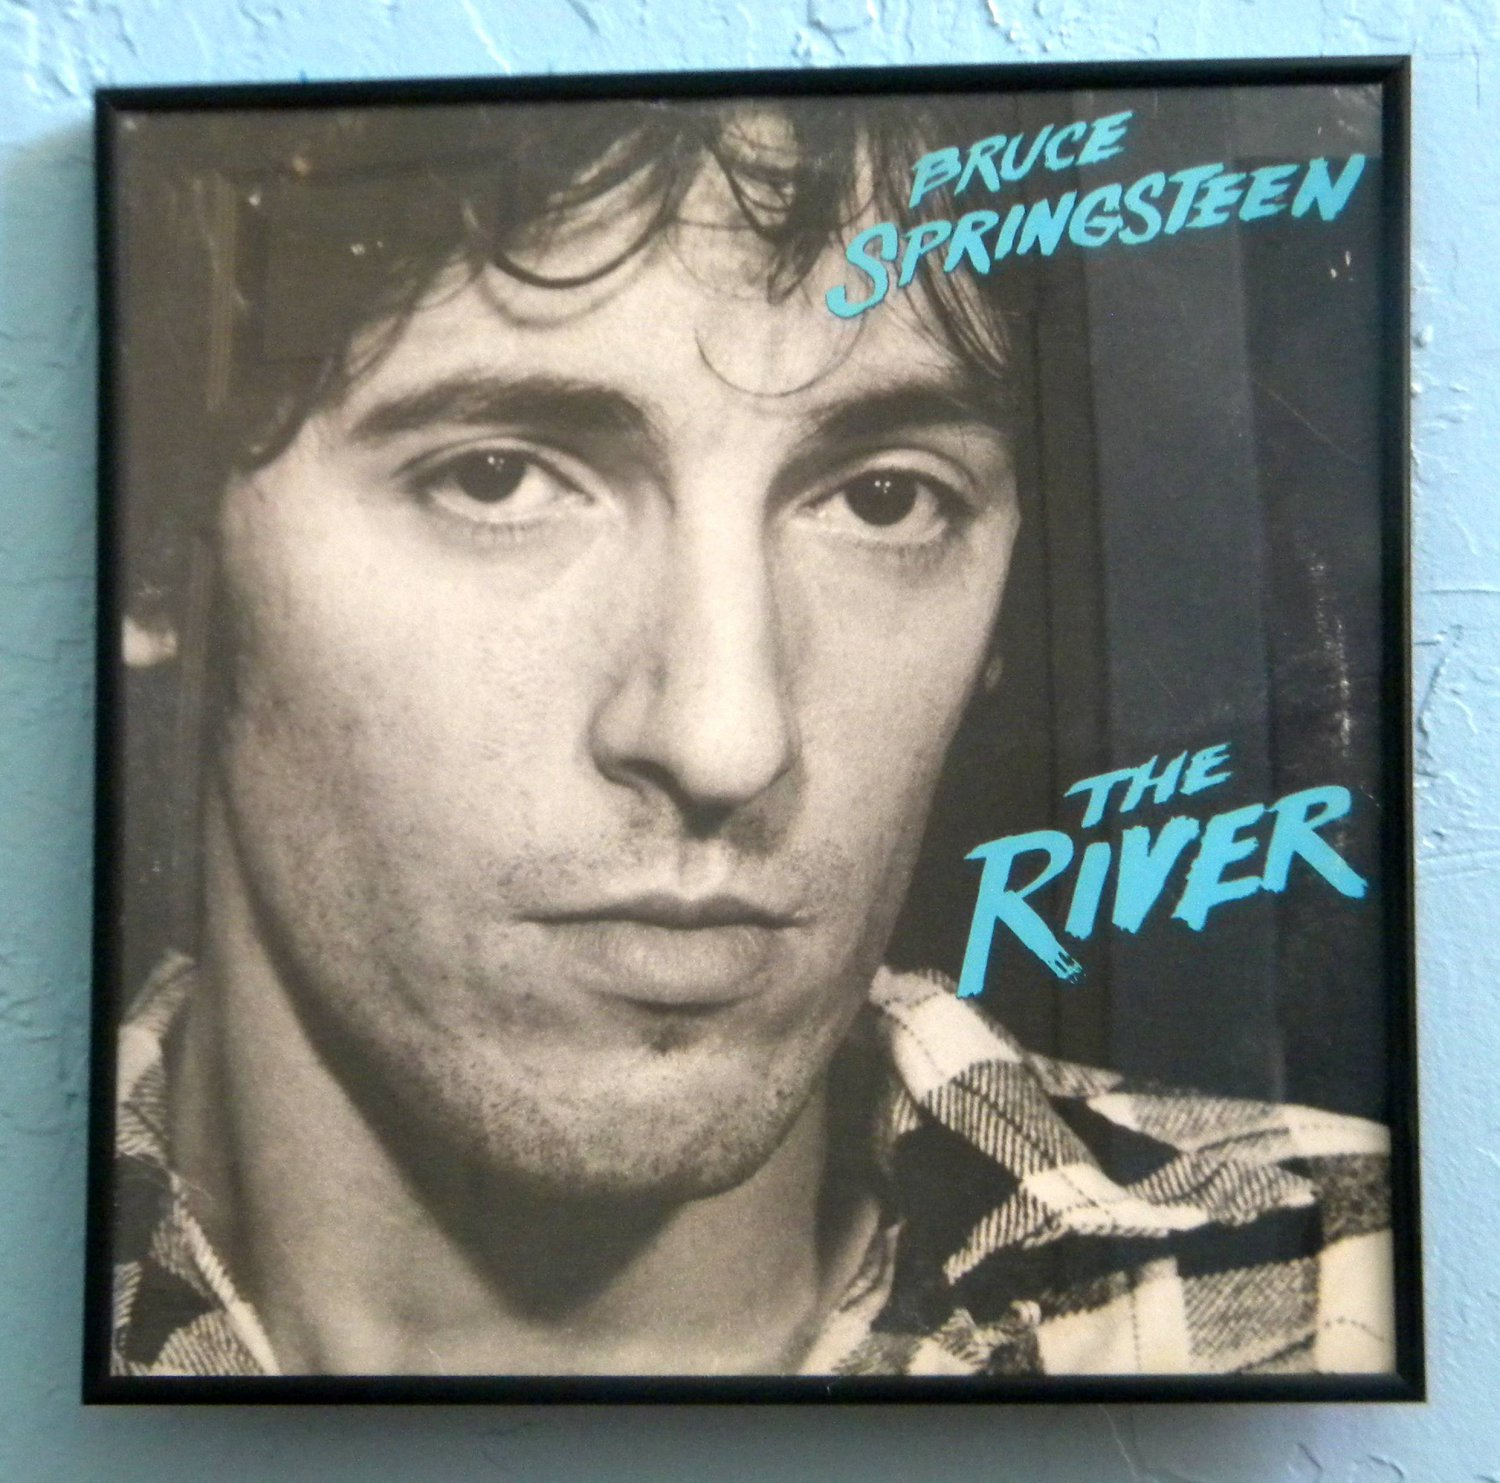 Rainbow Wall   Framed Vintage Record Album - Bruce Springsteen - The River